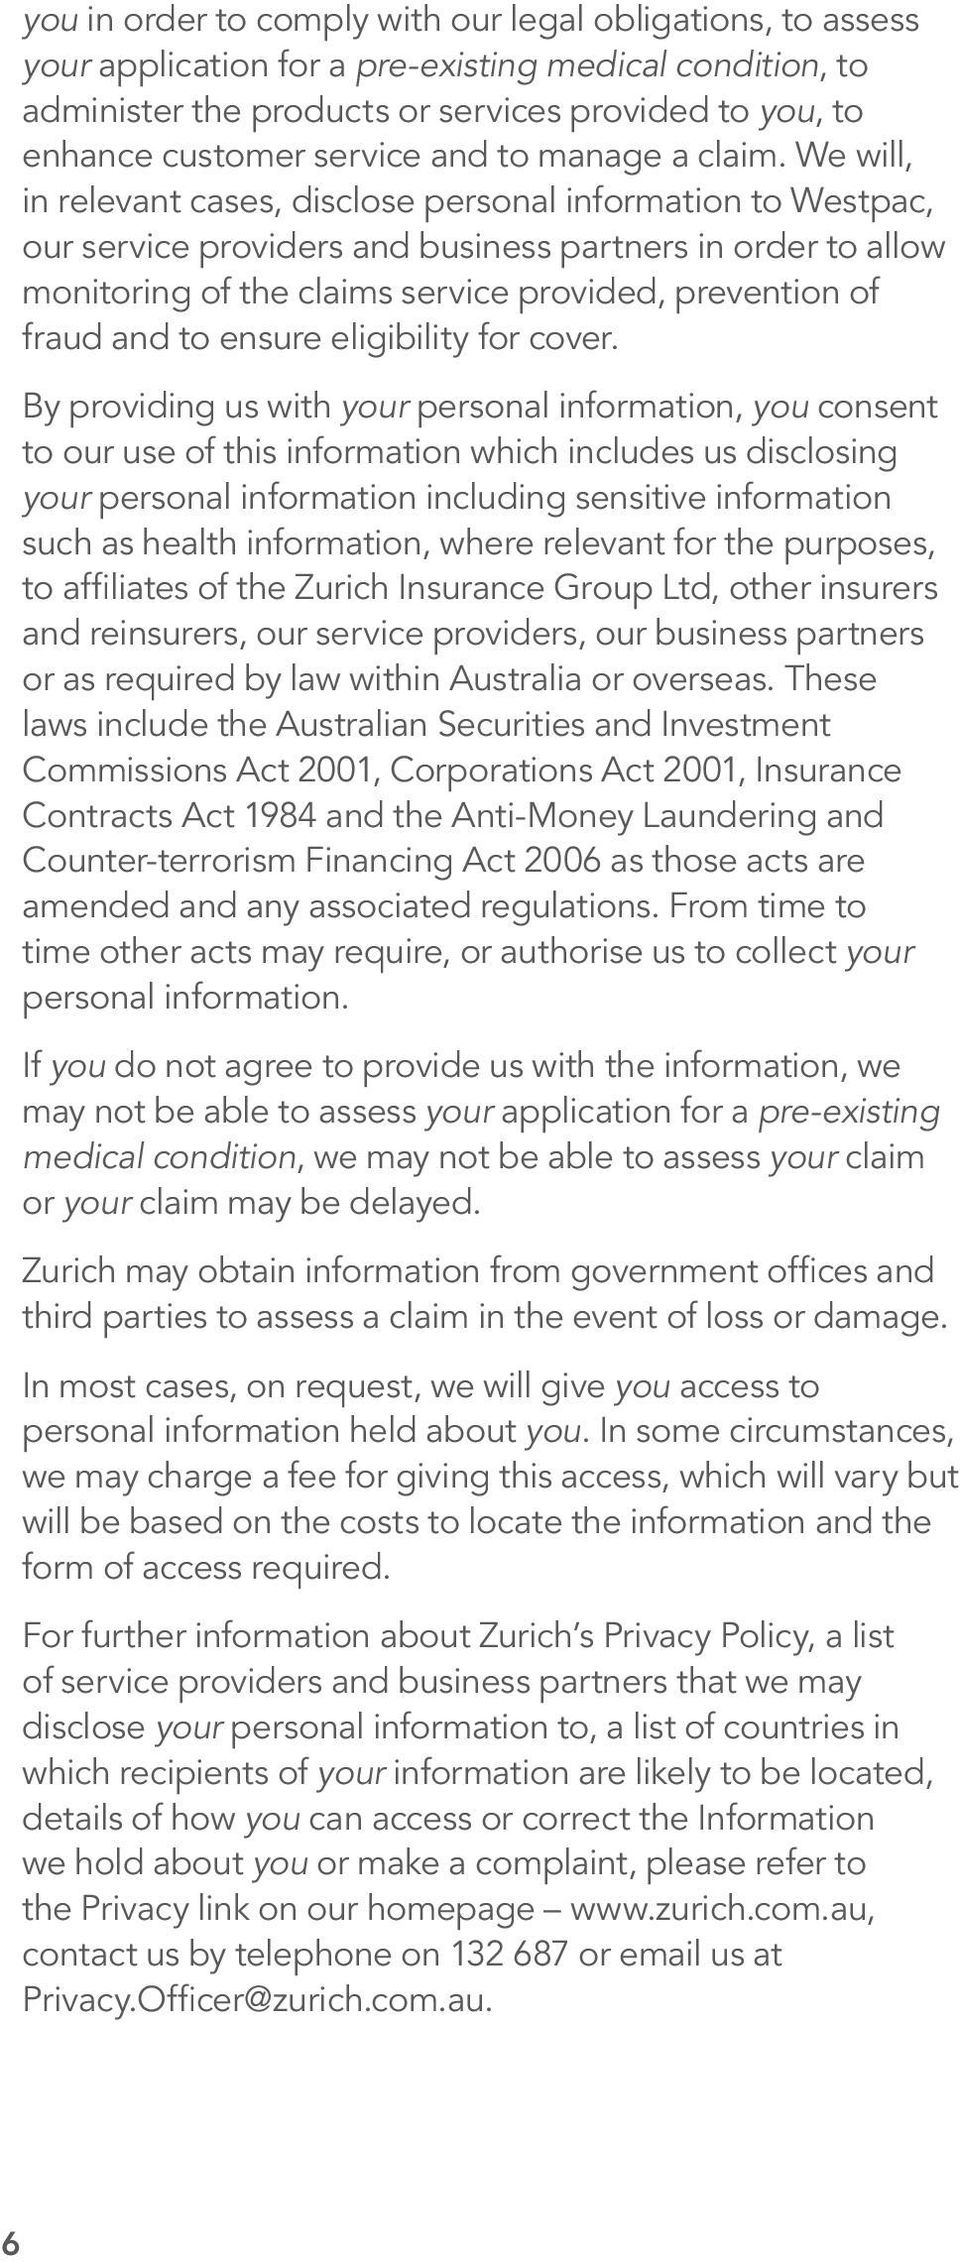 We will, in relevant cases, disclose personal information to Westpac, our service providers and business partners in order to allow monitoring of the claims service provided, prevention of fraud and